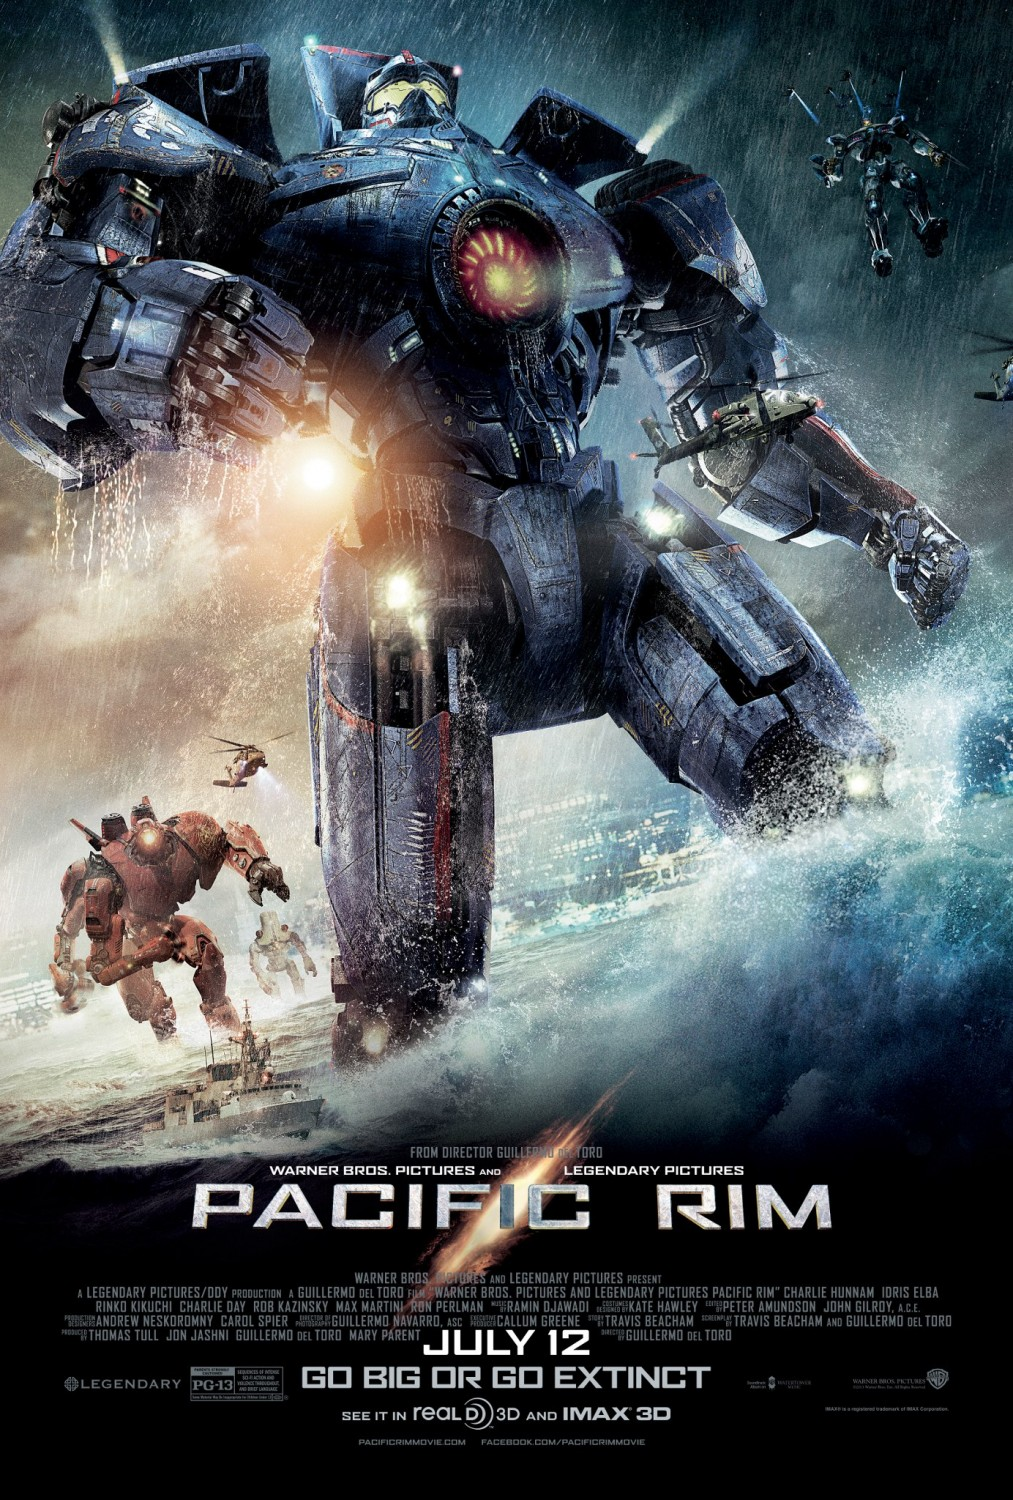 """Poster featuring Gipsy Danger from """"Pacific Rim""""."""